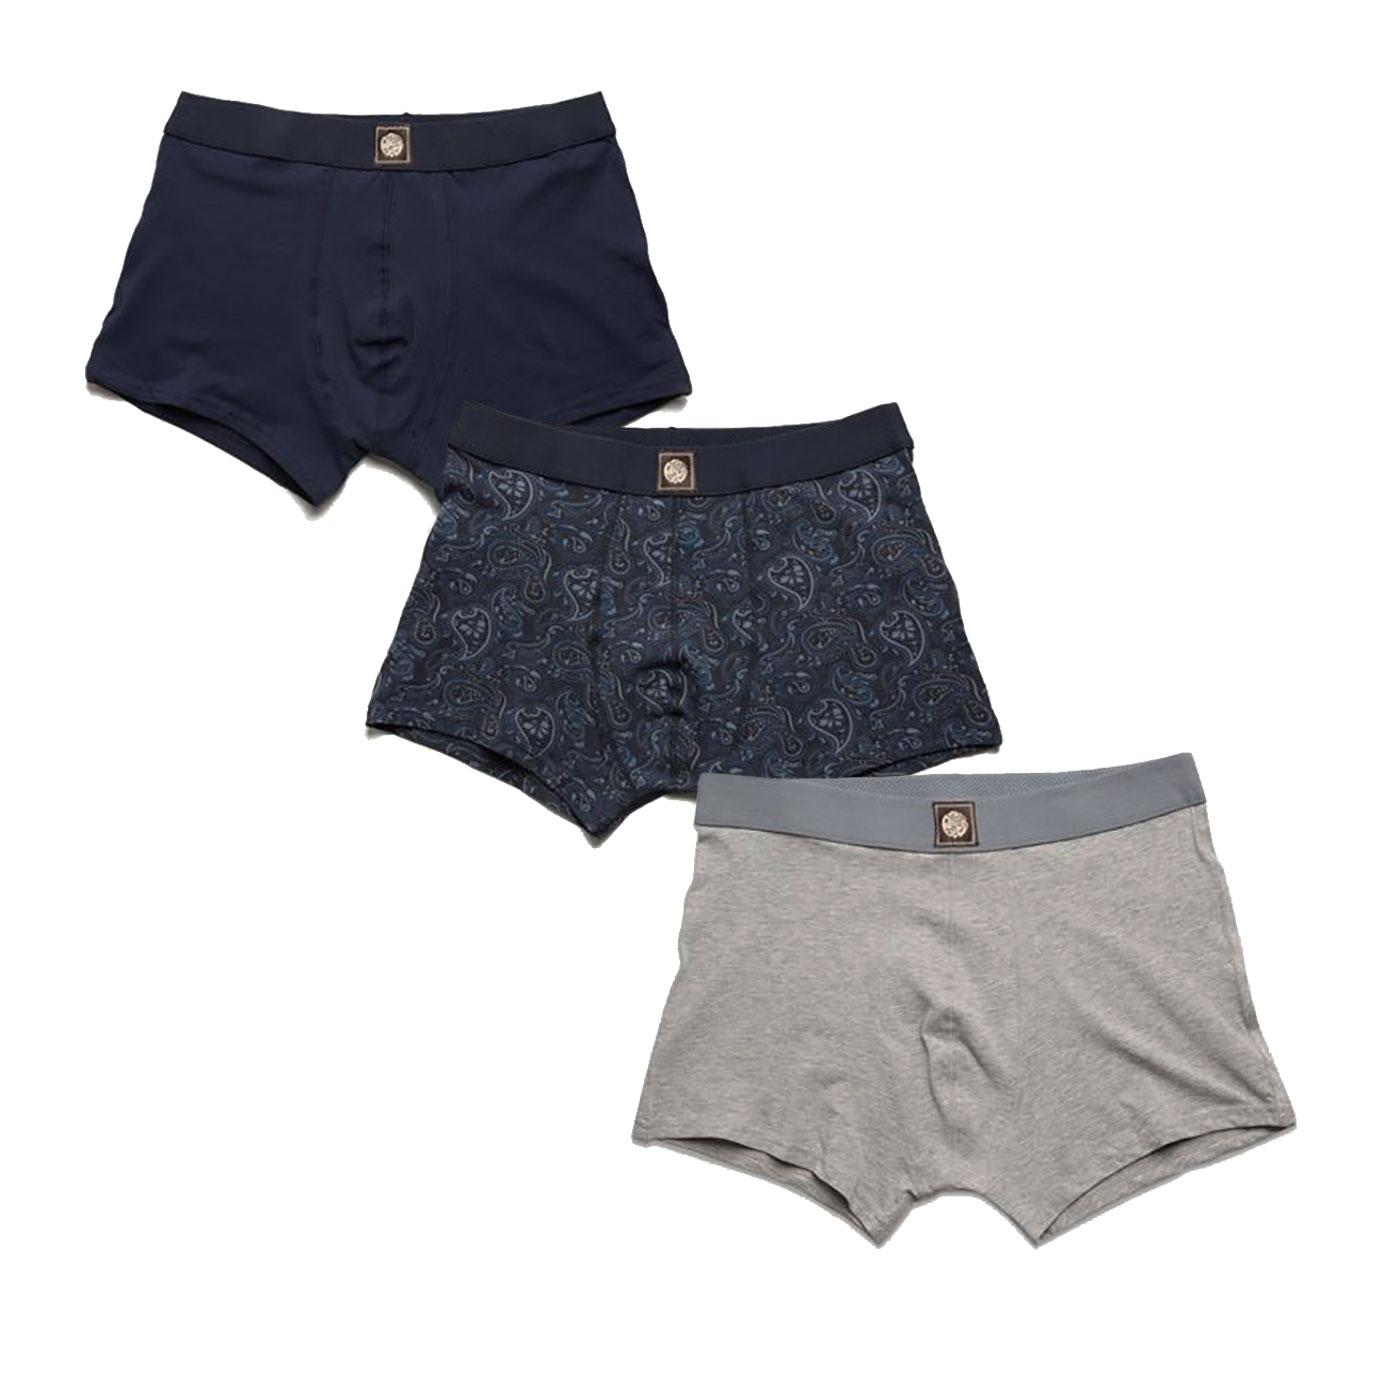 PRETTY GREEN 3 Pack Retro Boxer Shorts Gift Set N